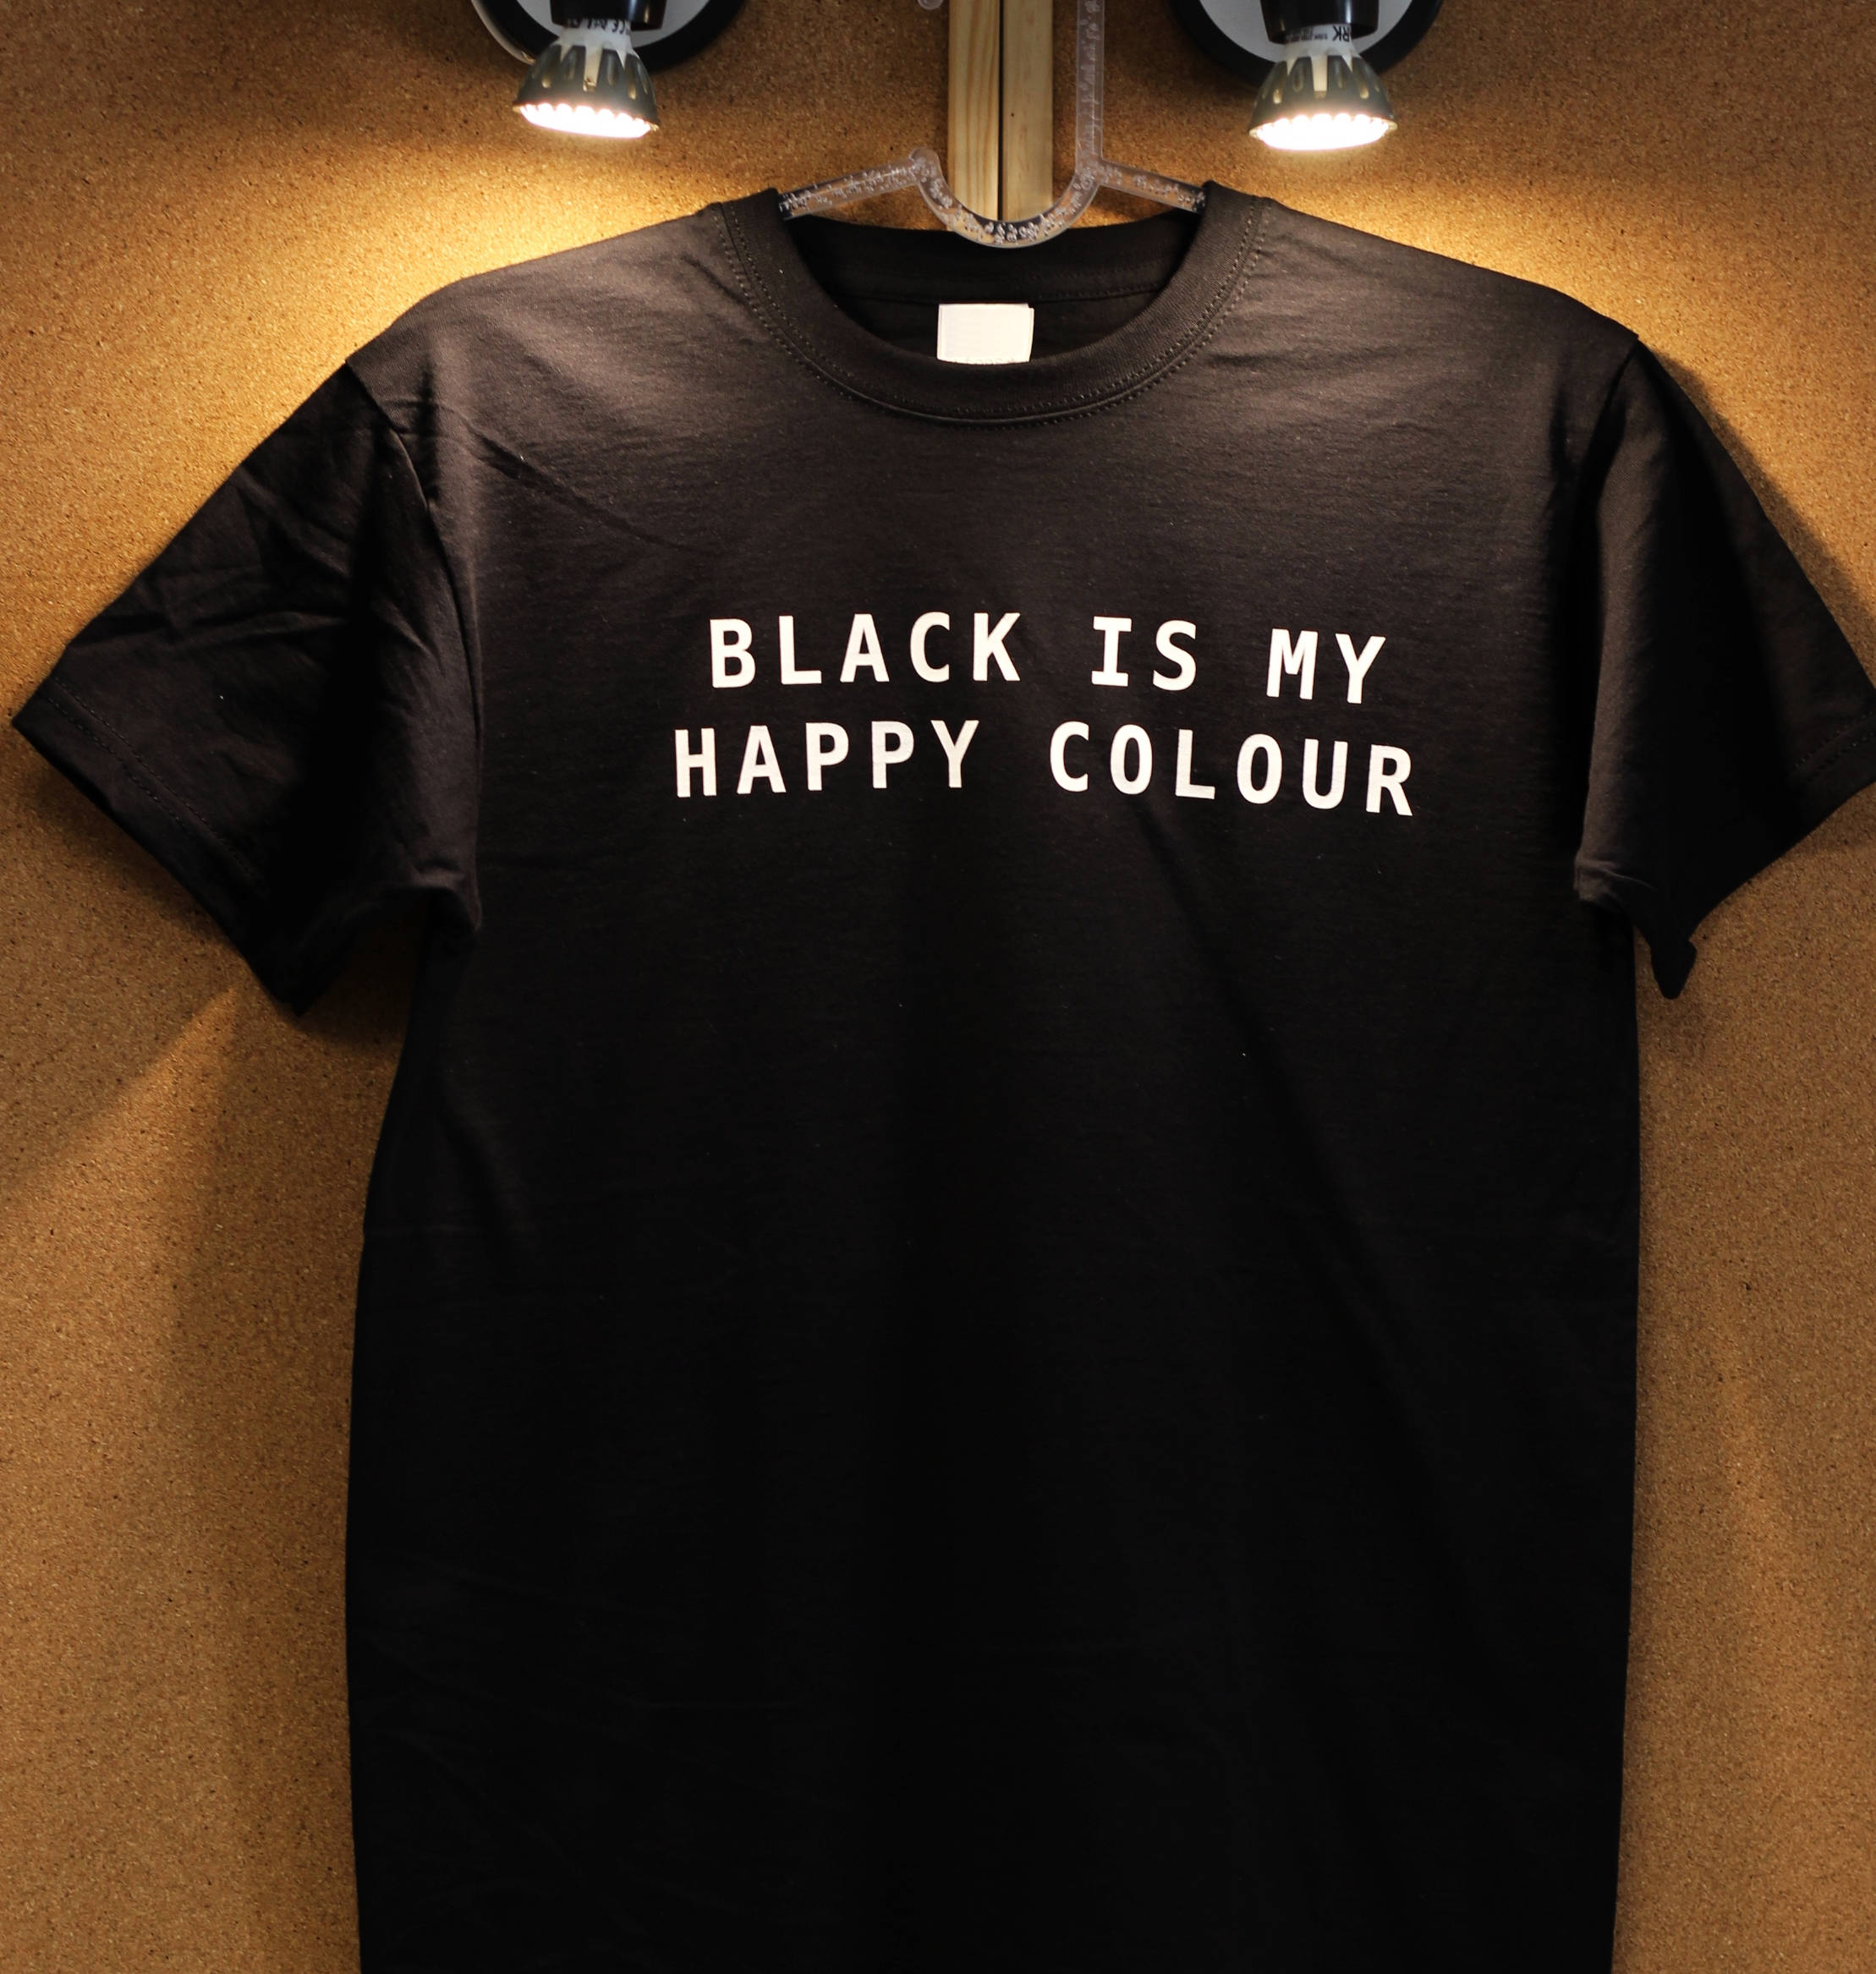 Image of Black is My Happy Colour shirt, Black Tshirt Tumblr Outfit, Instagram fashion Unisex Cotton Tee Shirt